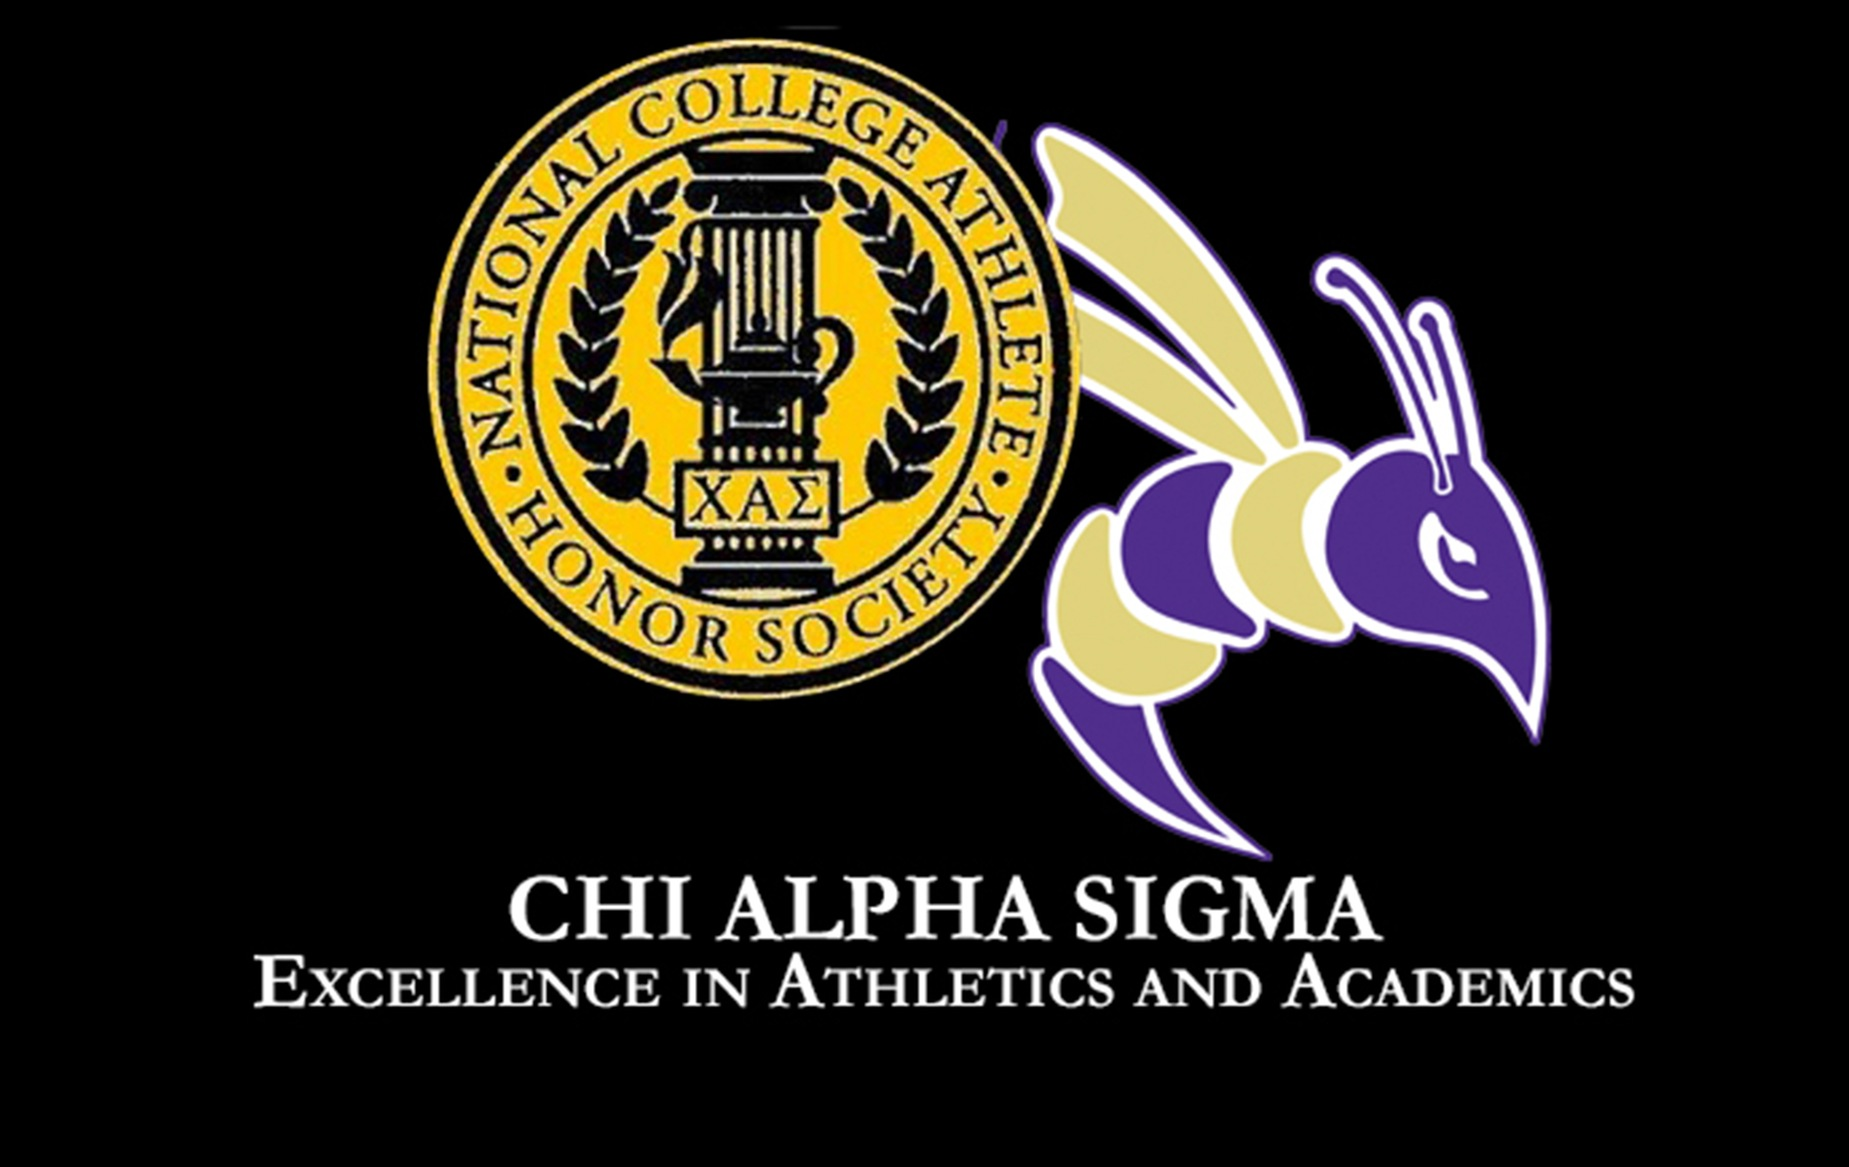 Defiance Has 48 Student-Athletes Selected Chi Alpha Sigma